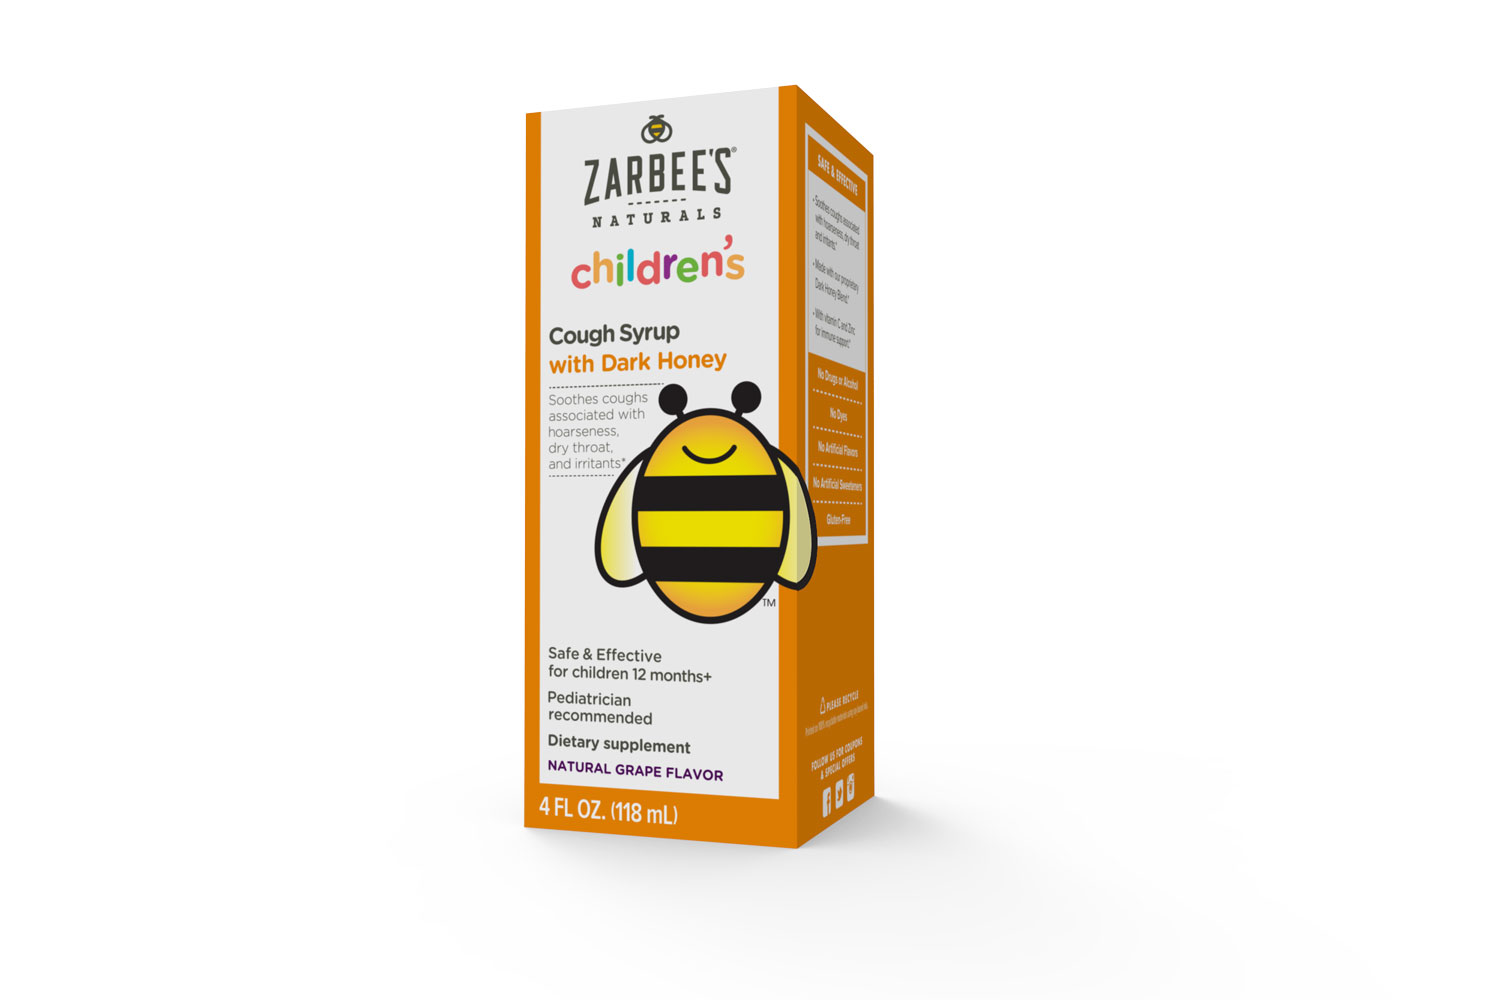 Zarbees